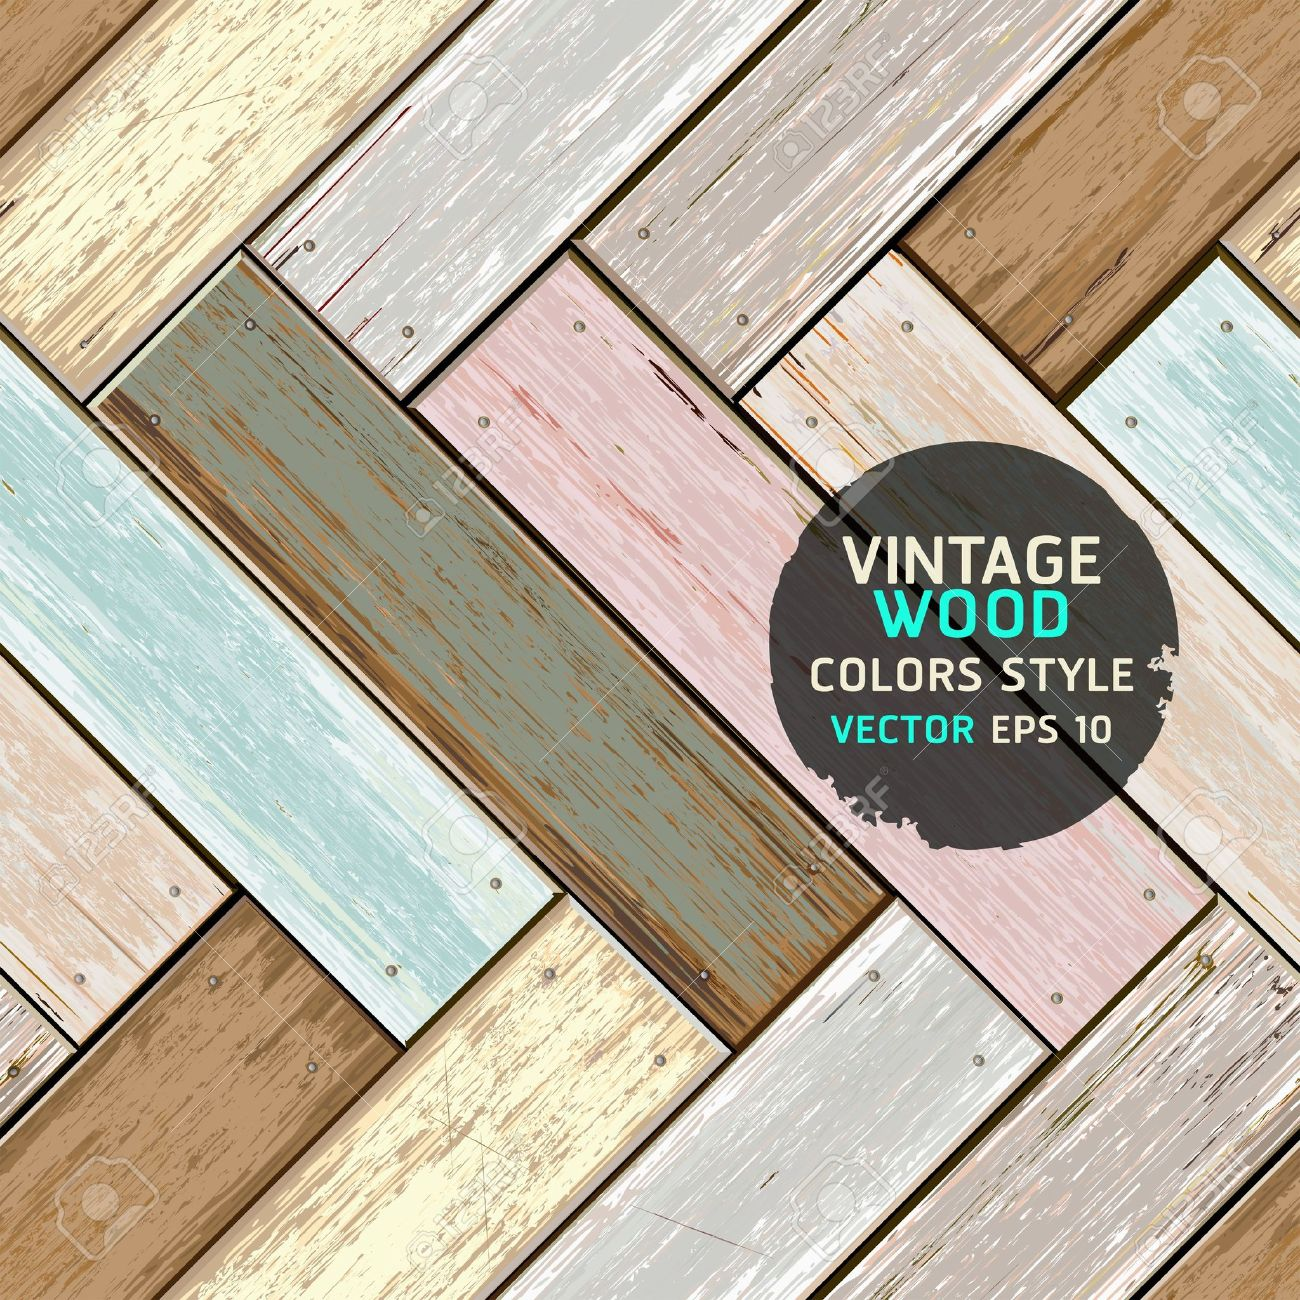 Wooden vintage color texture background illustration Stock Vector - 19489961